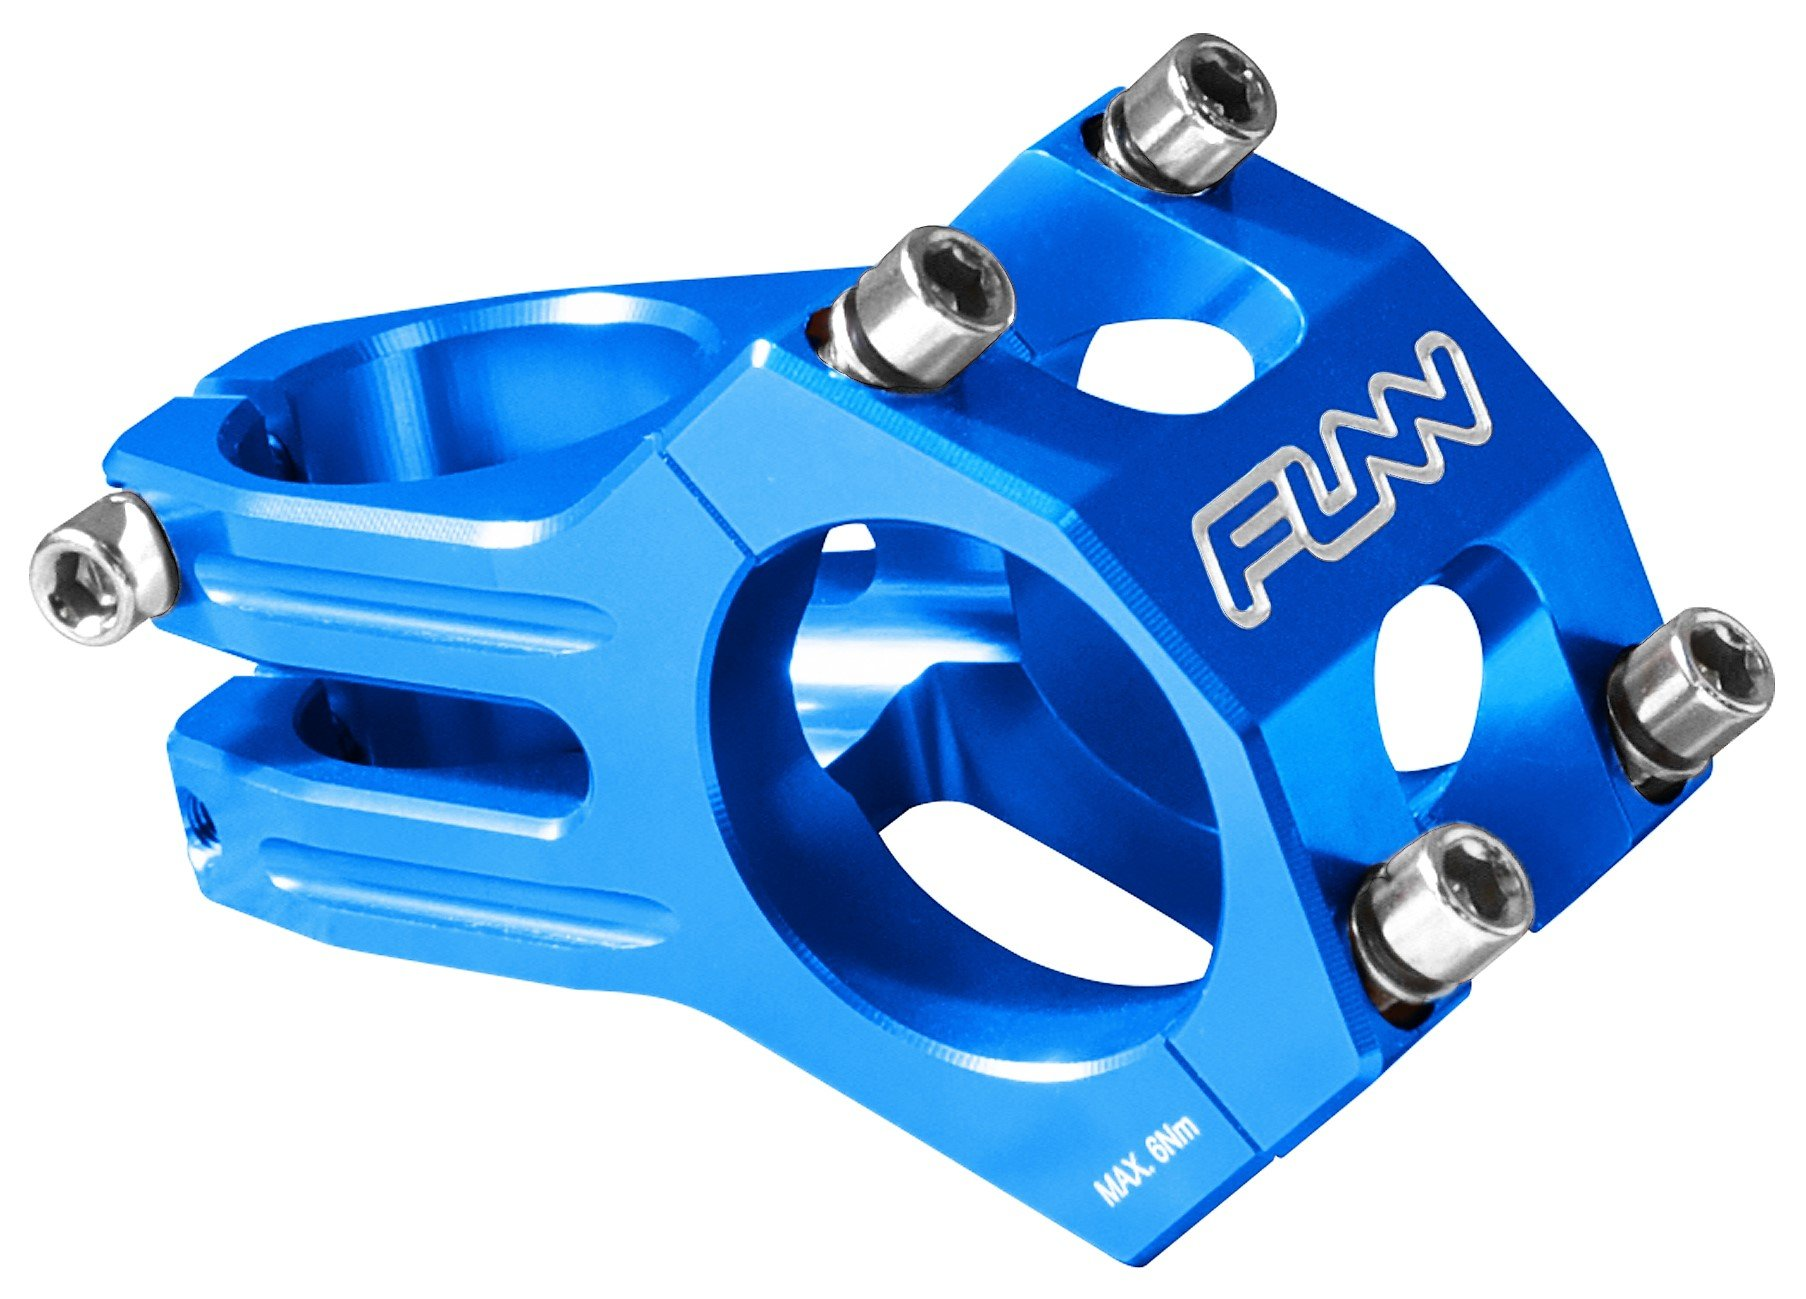 Funn Funnduro MTB Stem, Bar Clamp 31.8mm (Length 60mm, Blue)